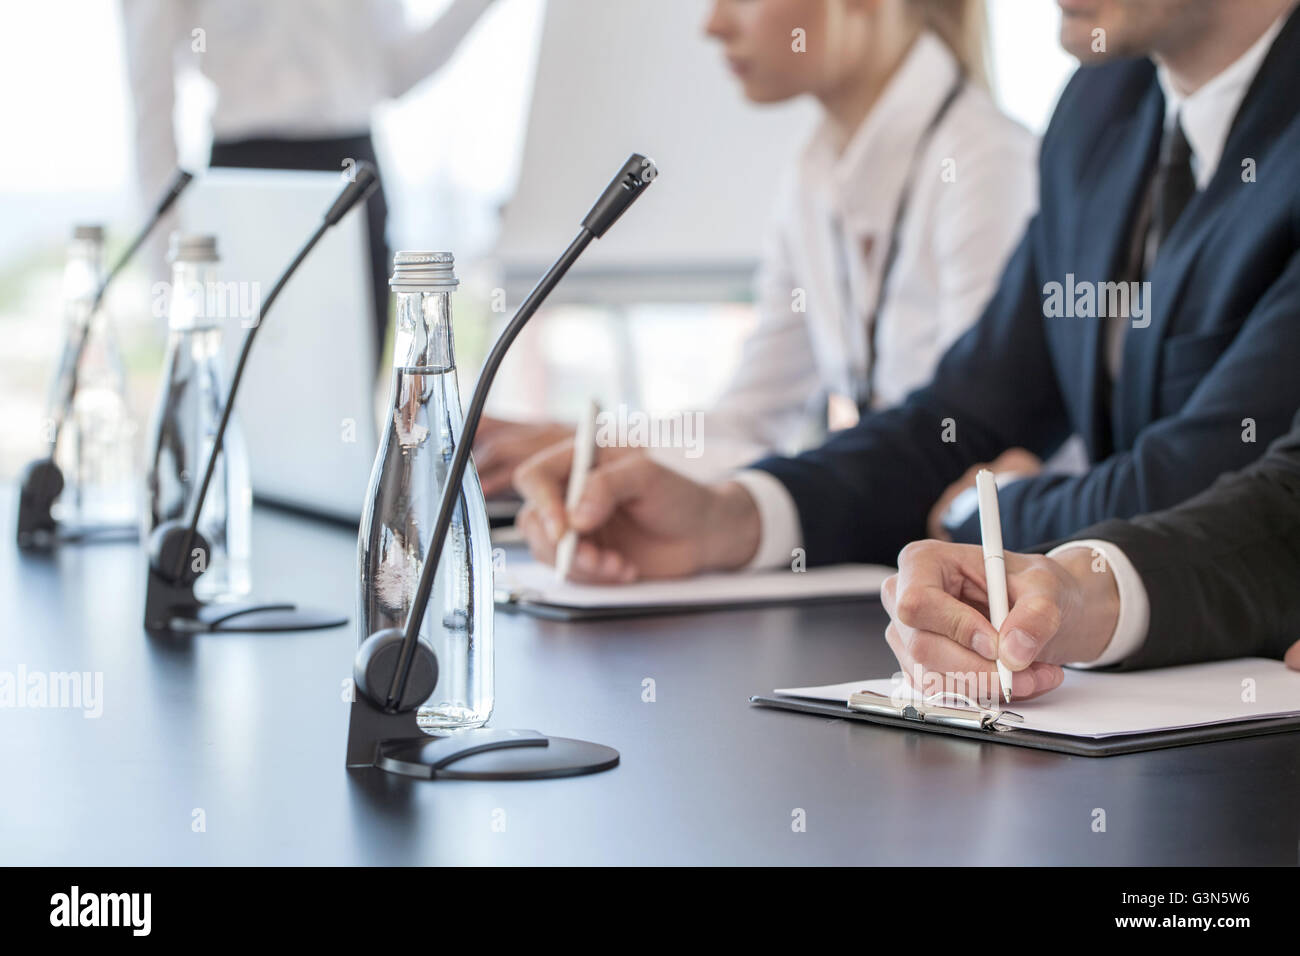 Business people speaking at presentation in microphones in office - Stock Image